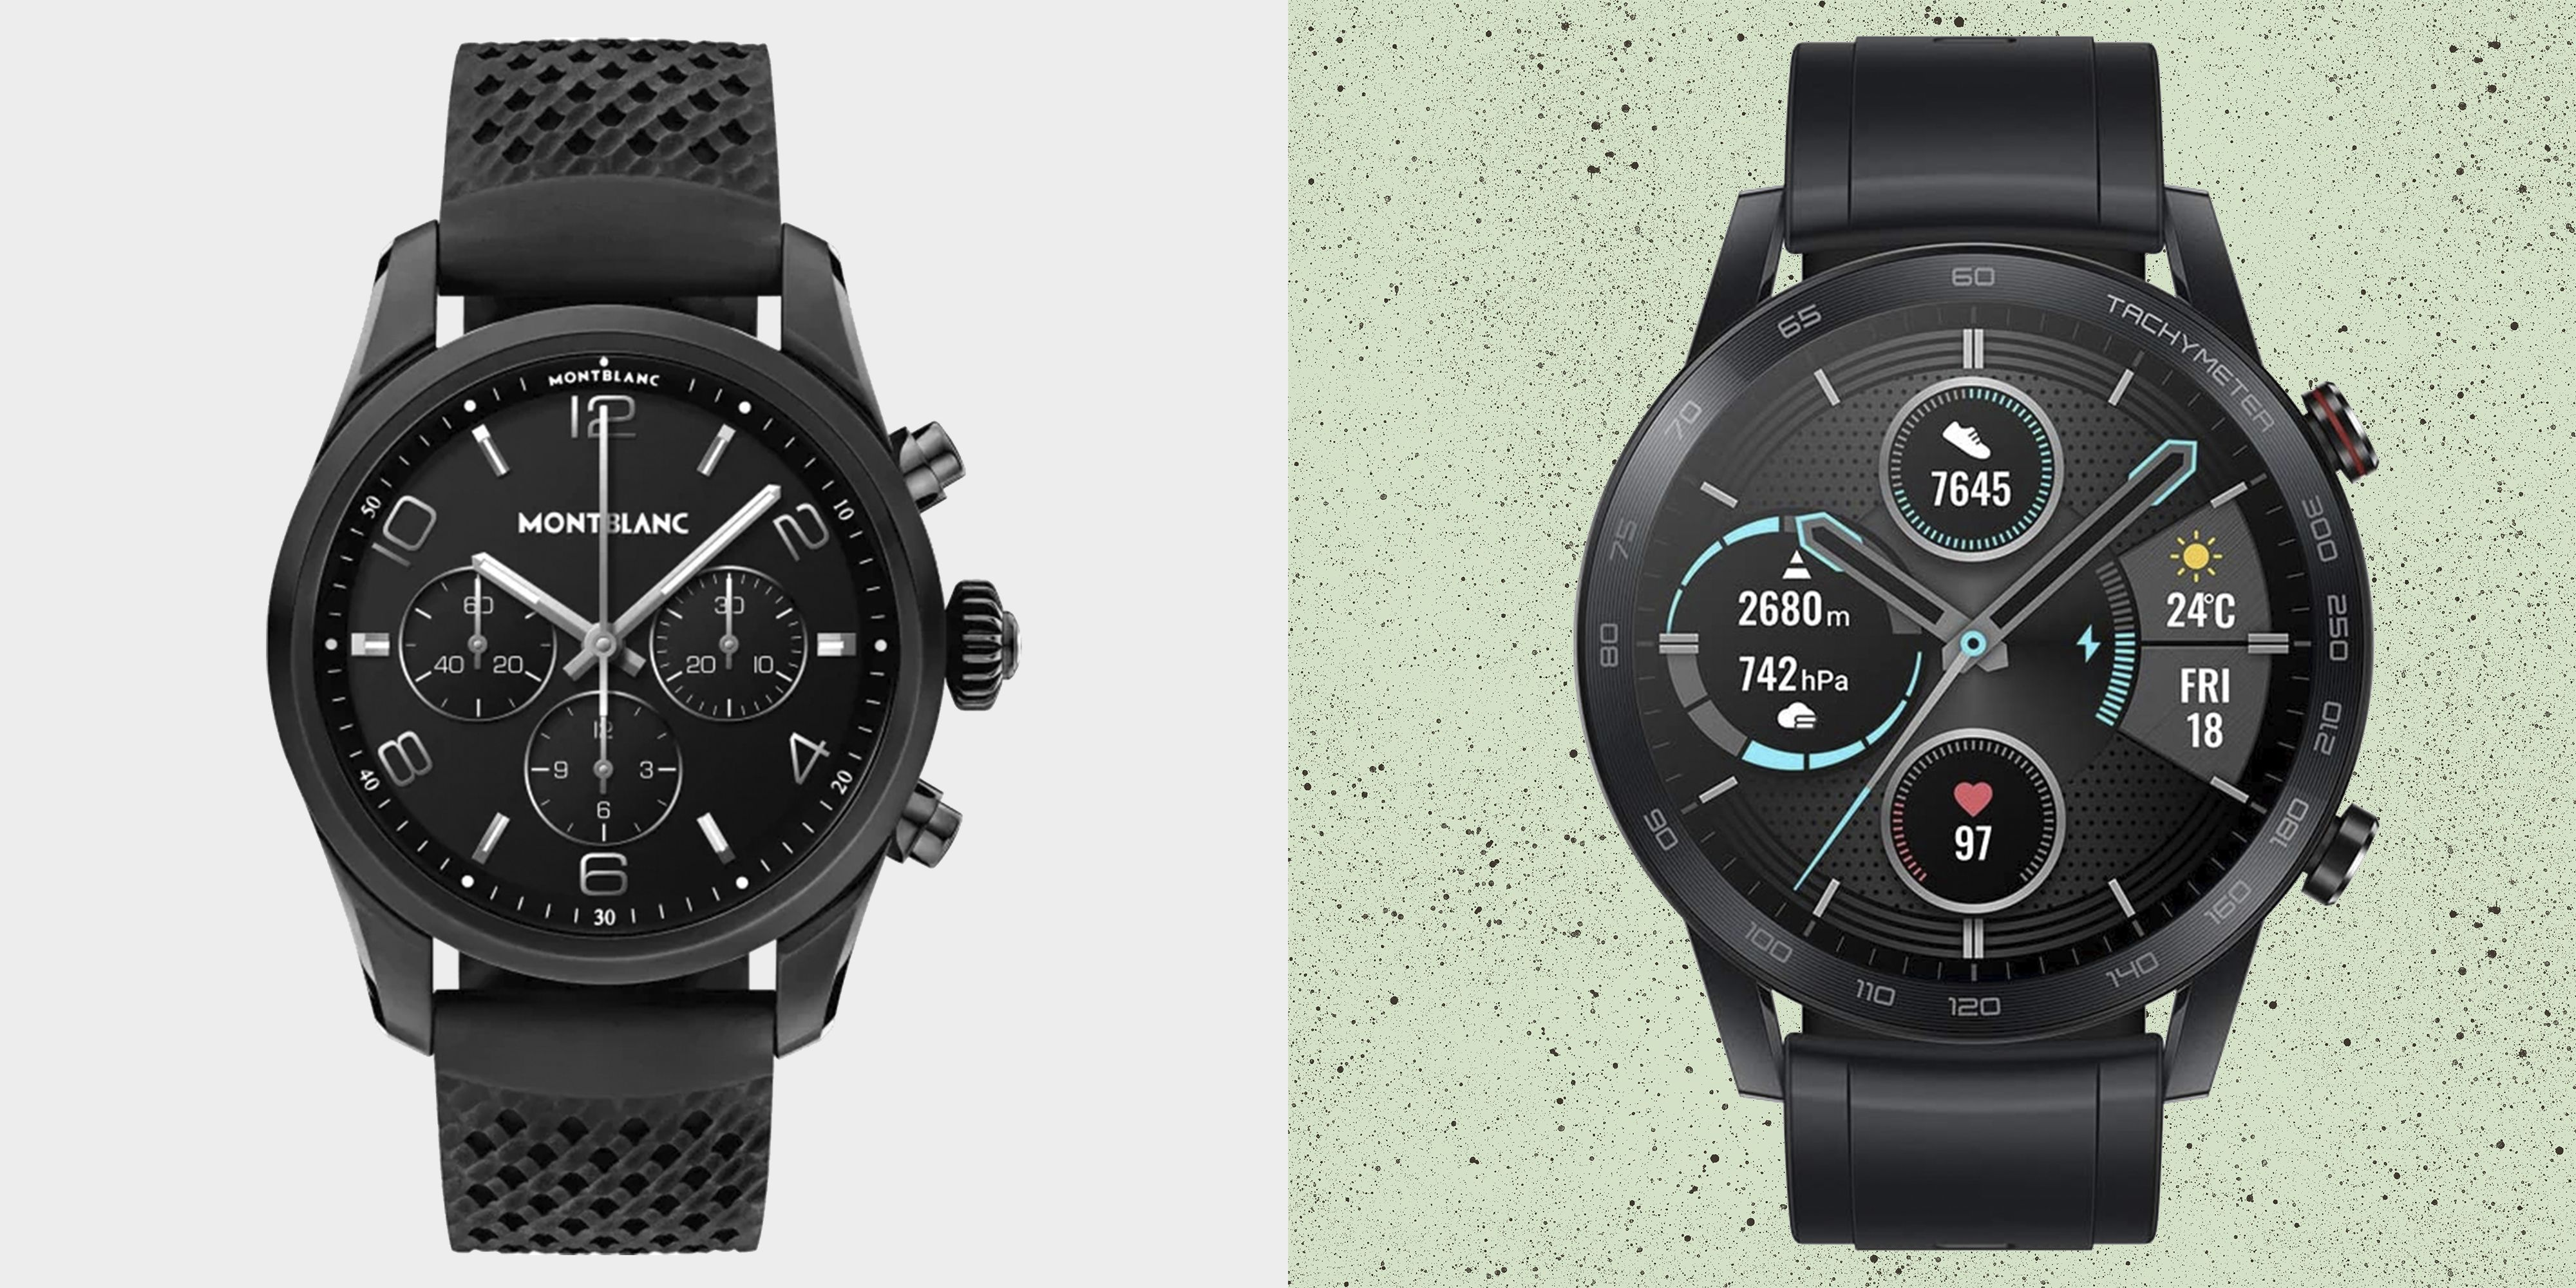 The Best Smart Watches For Men 2020 | Esquire's Faves From